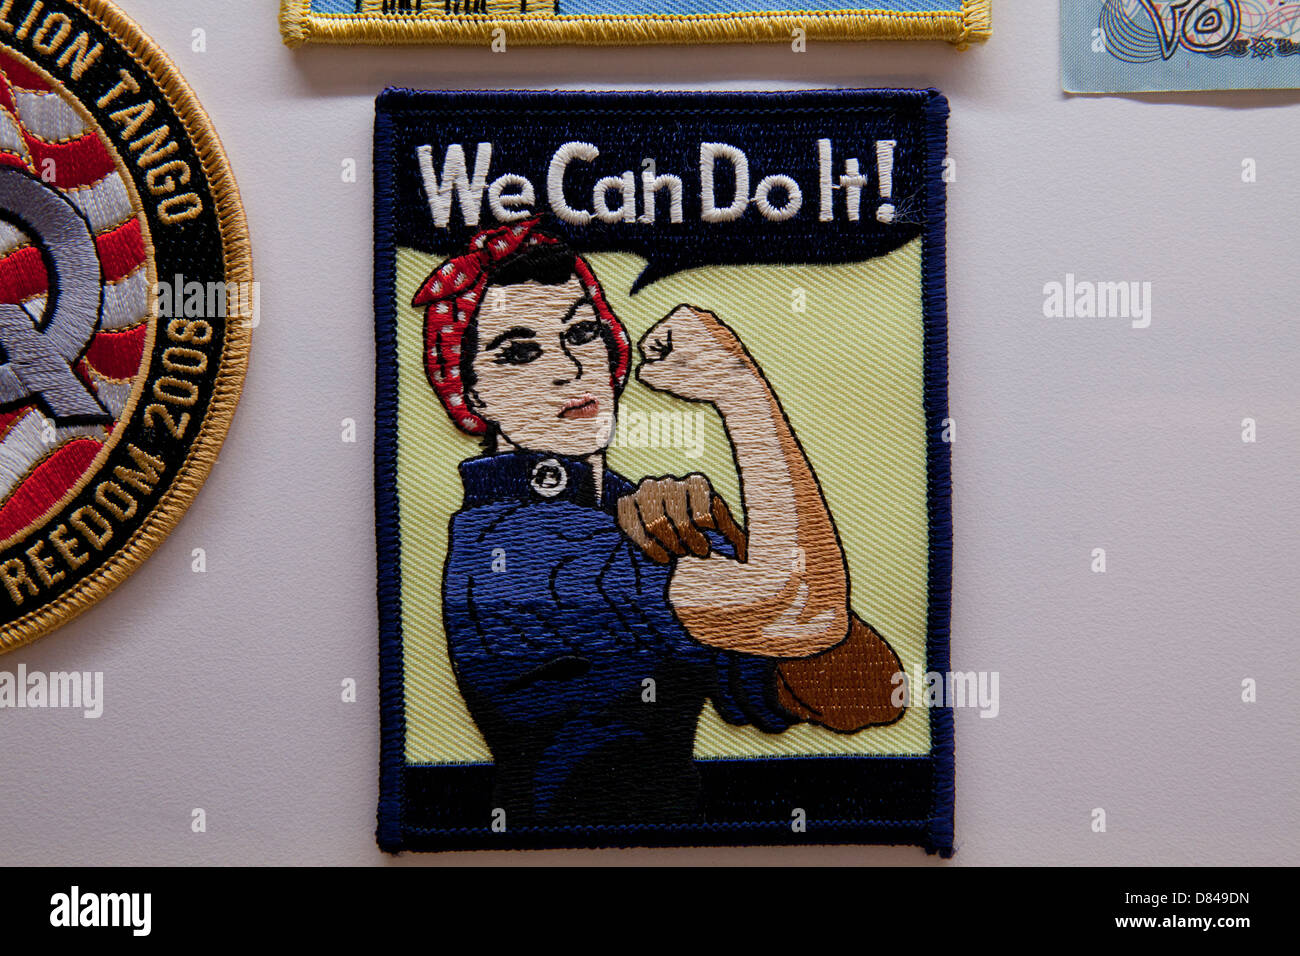 We Can Do It! patch - Stock Image